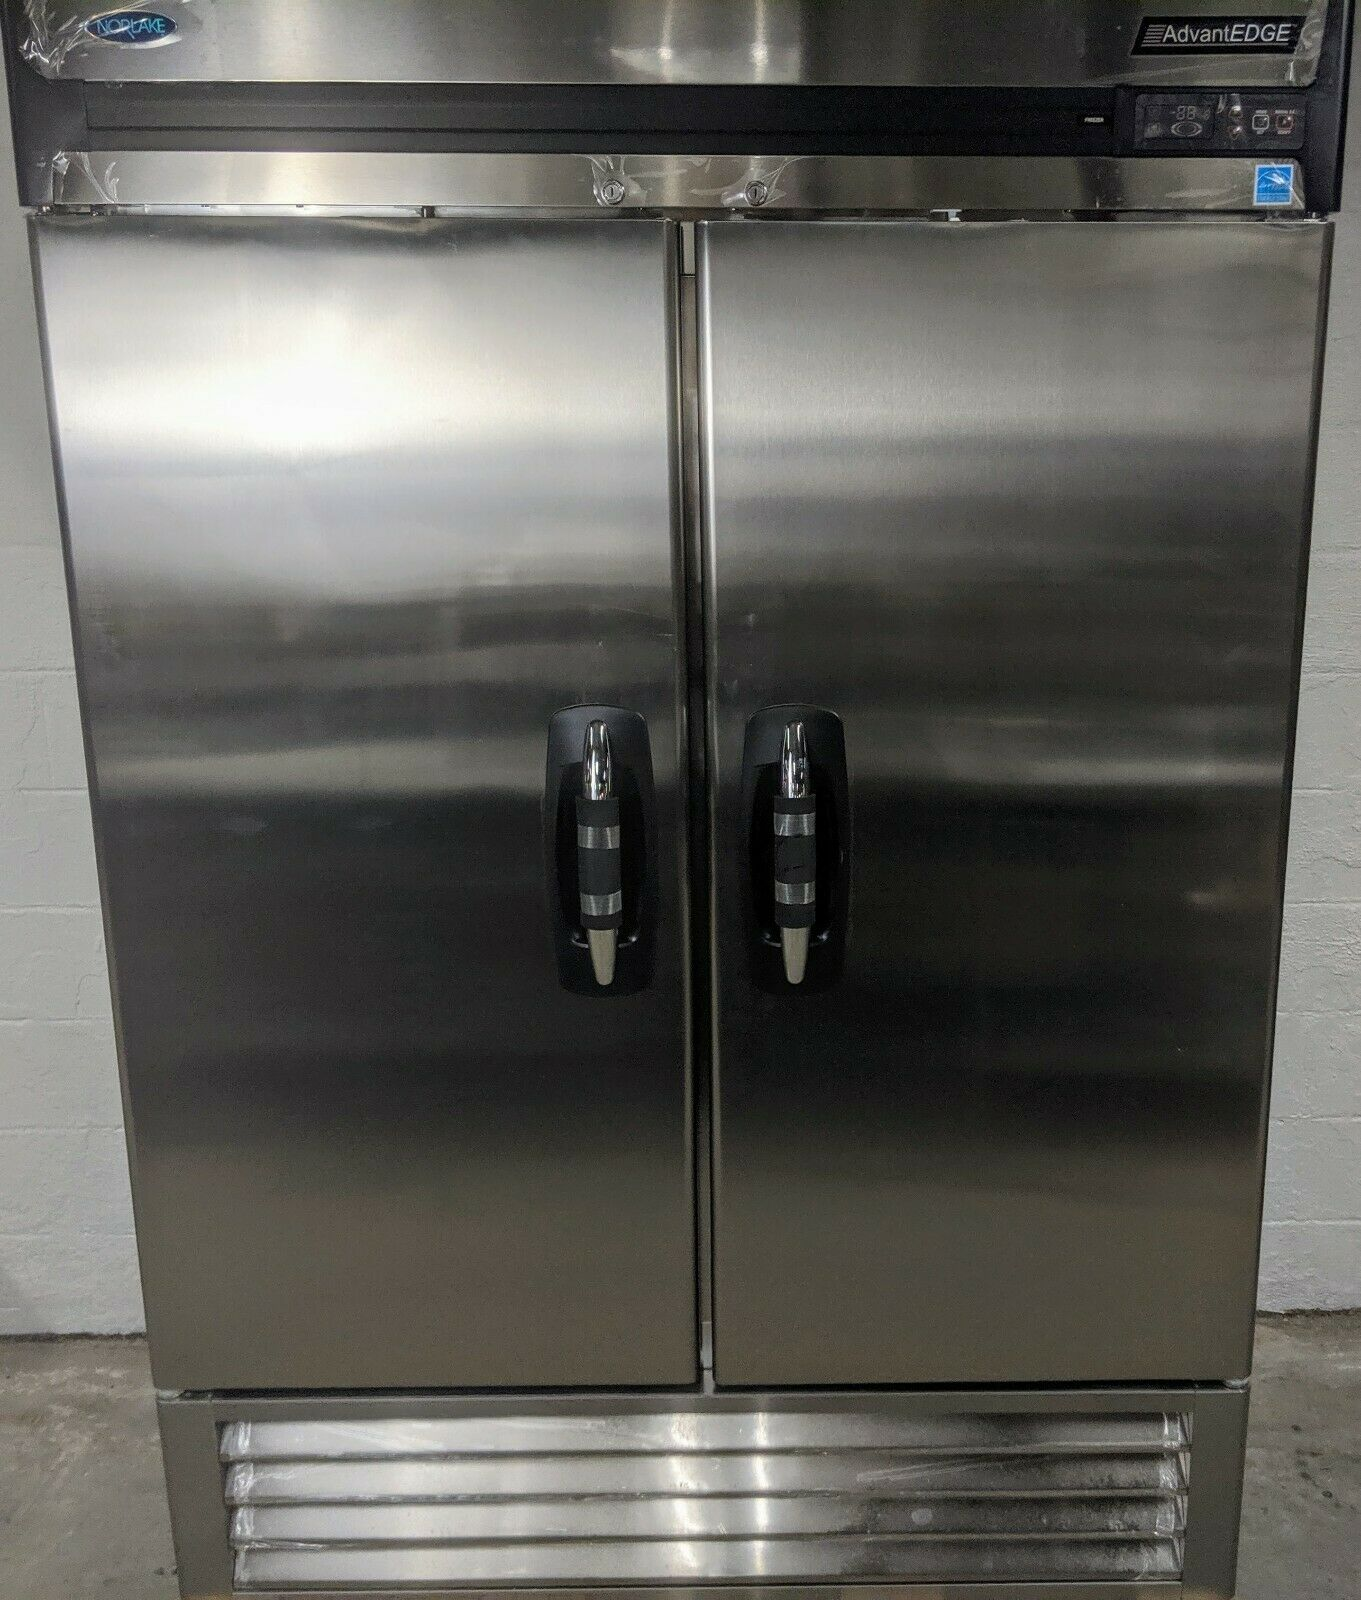 Open Box Nor-Lake NLF49-S Two Section Reach In Freezer